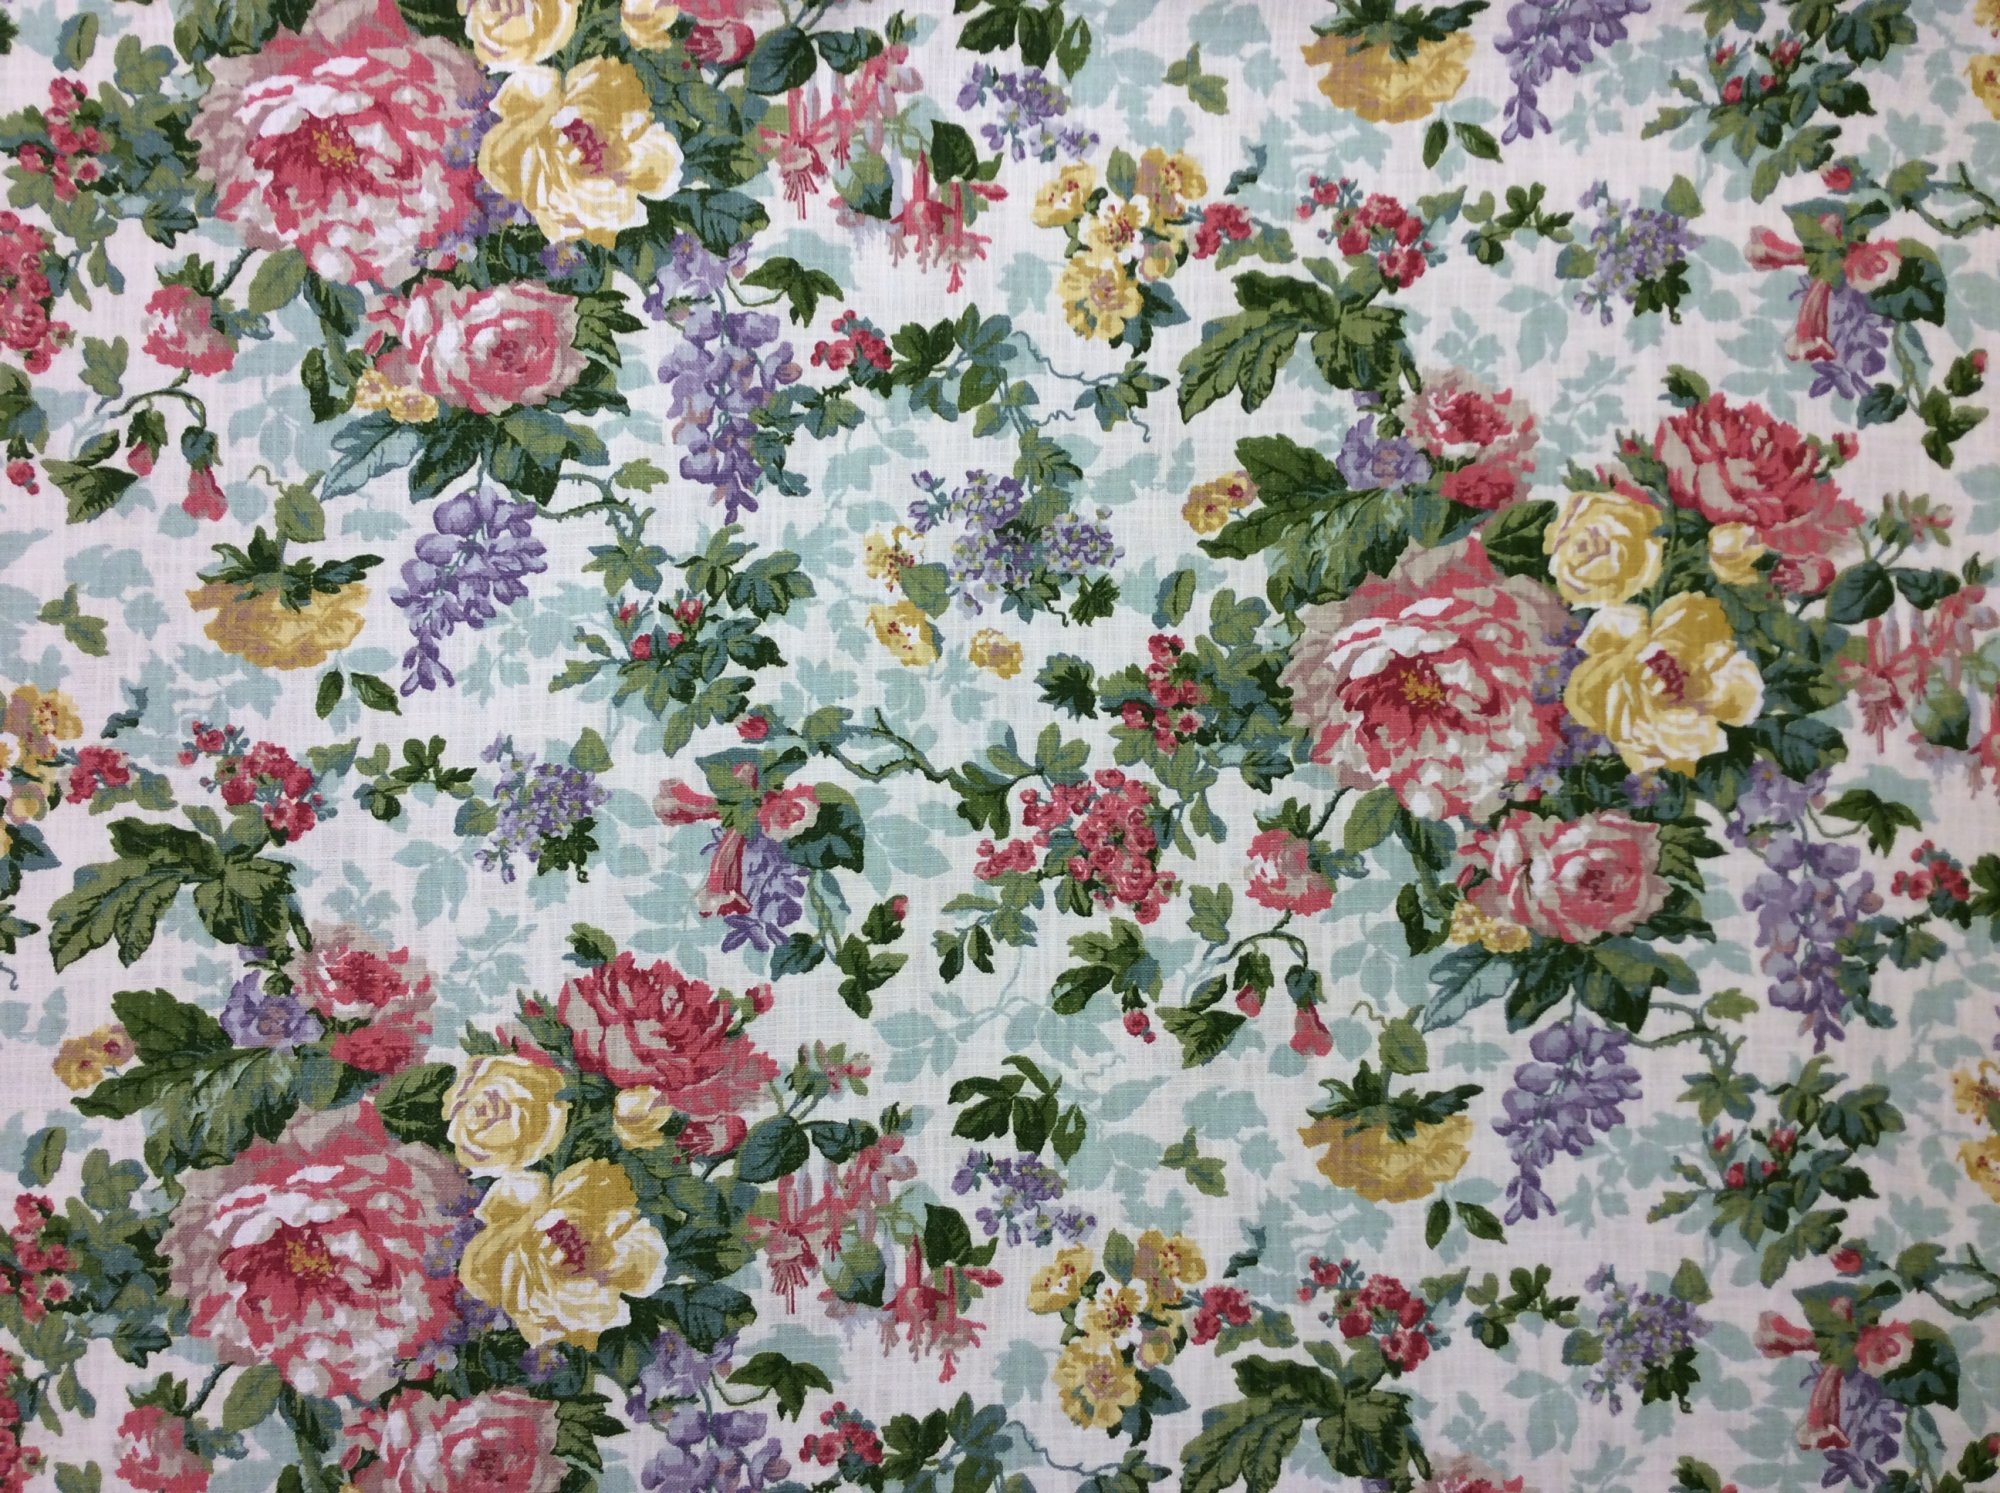 Shabby Chic French Country Cabbage Rose Floral Heavy Cotton Printed Home Decor Upholstery Fabric OR142